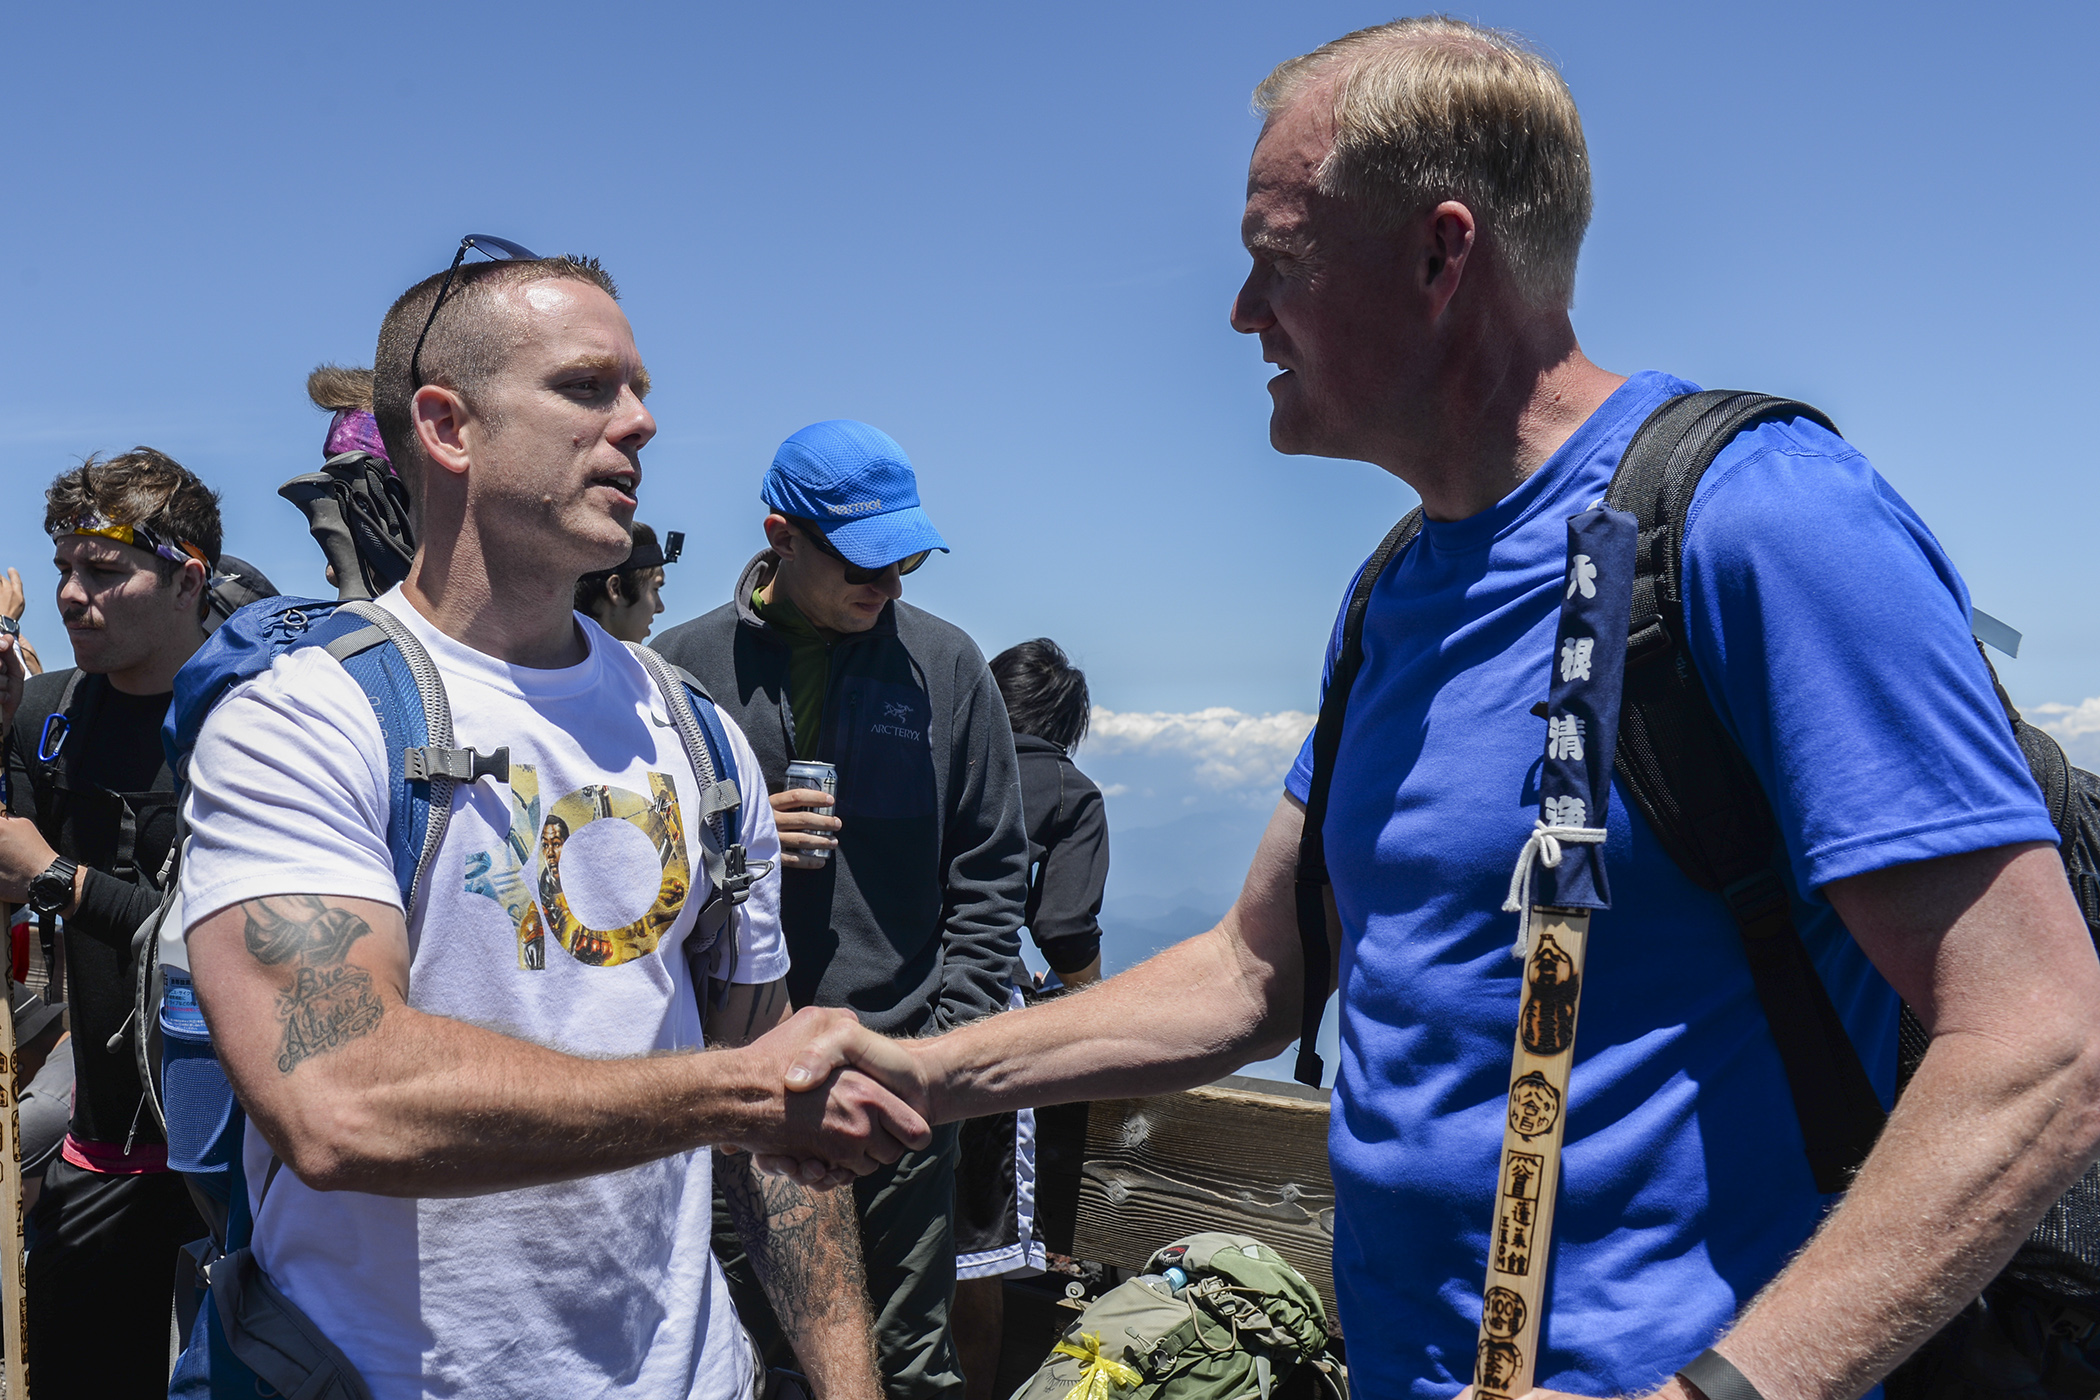 An Airman thanks Chief Master Sergeant of the Air Force, James A. Cody, for hiking alongside members of team Yokota at Mount Fuji, Japan, July 11, 2015. Cody invited Yokota personnel to join him on the hike so that he could take time to interact with them. (U.S. Air Force photo by Airman 1st Class Elizabeth Baker/Released)